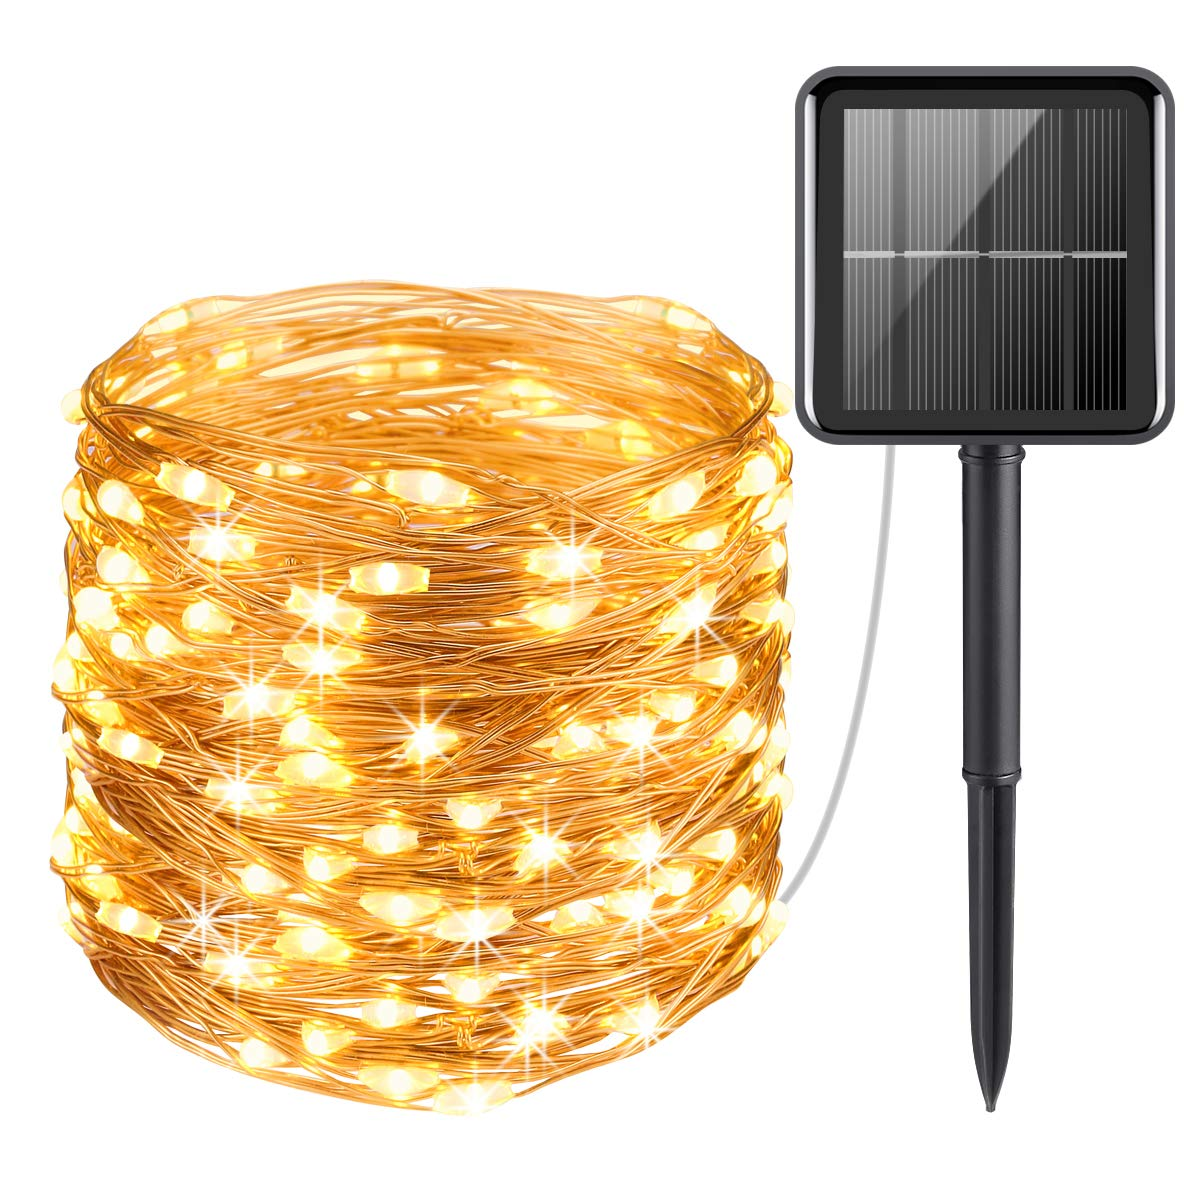 solar string lights outdoor 33ft 100 led solar powered fairy lights waterproof decorative lighting for patio garden yard party wedding warm white